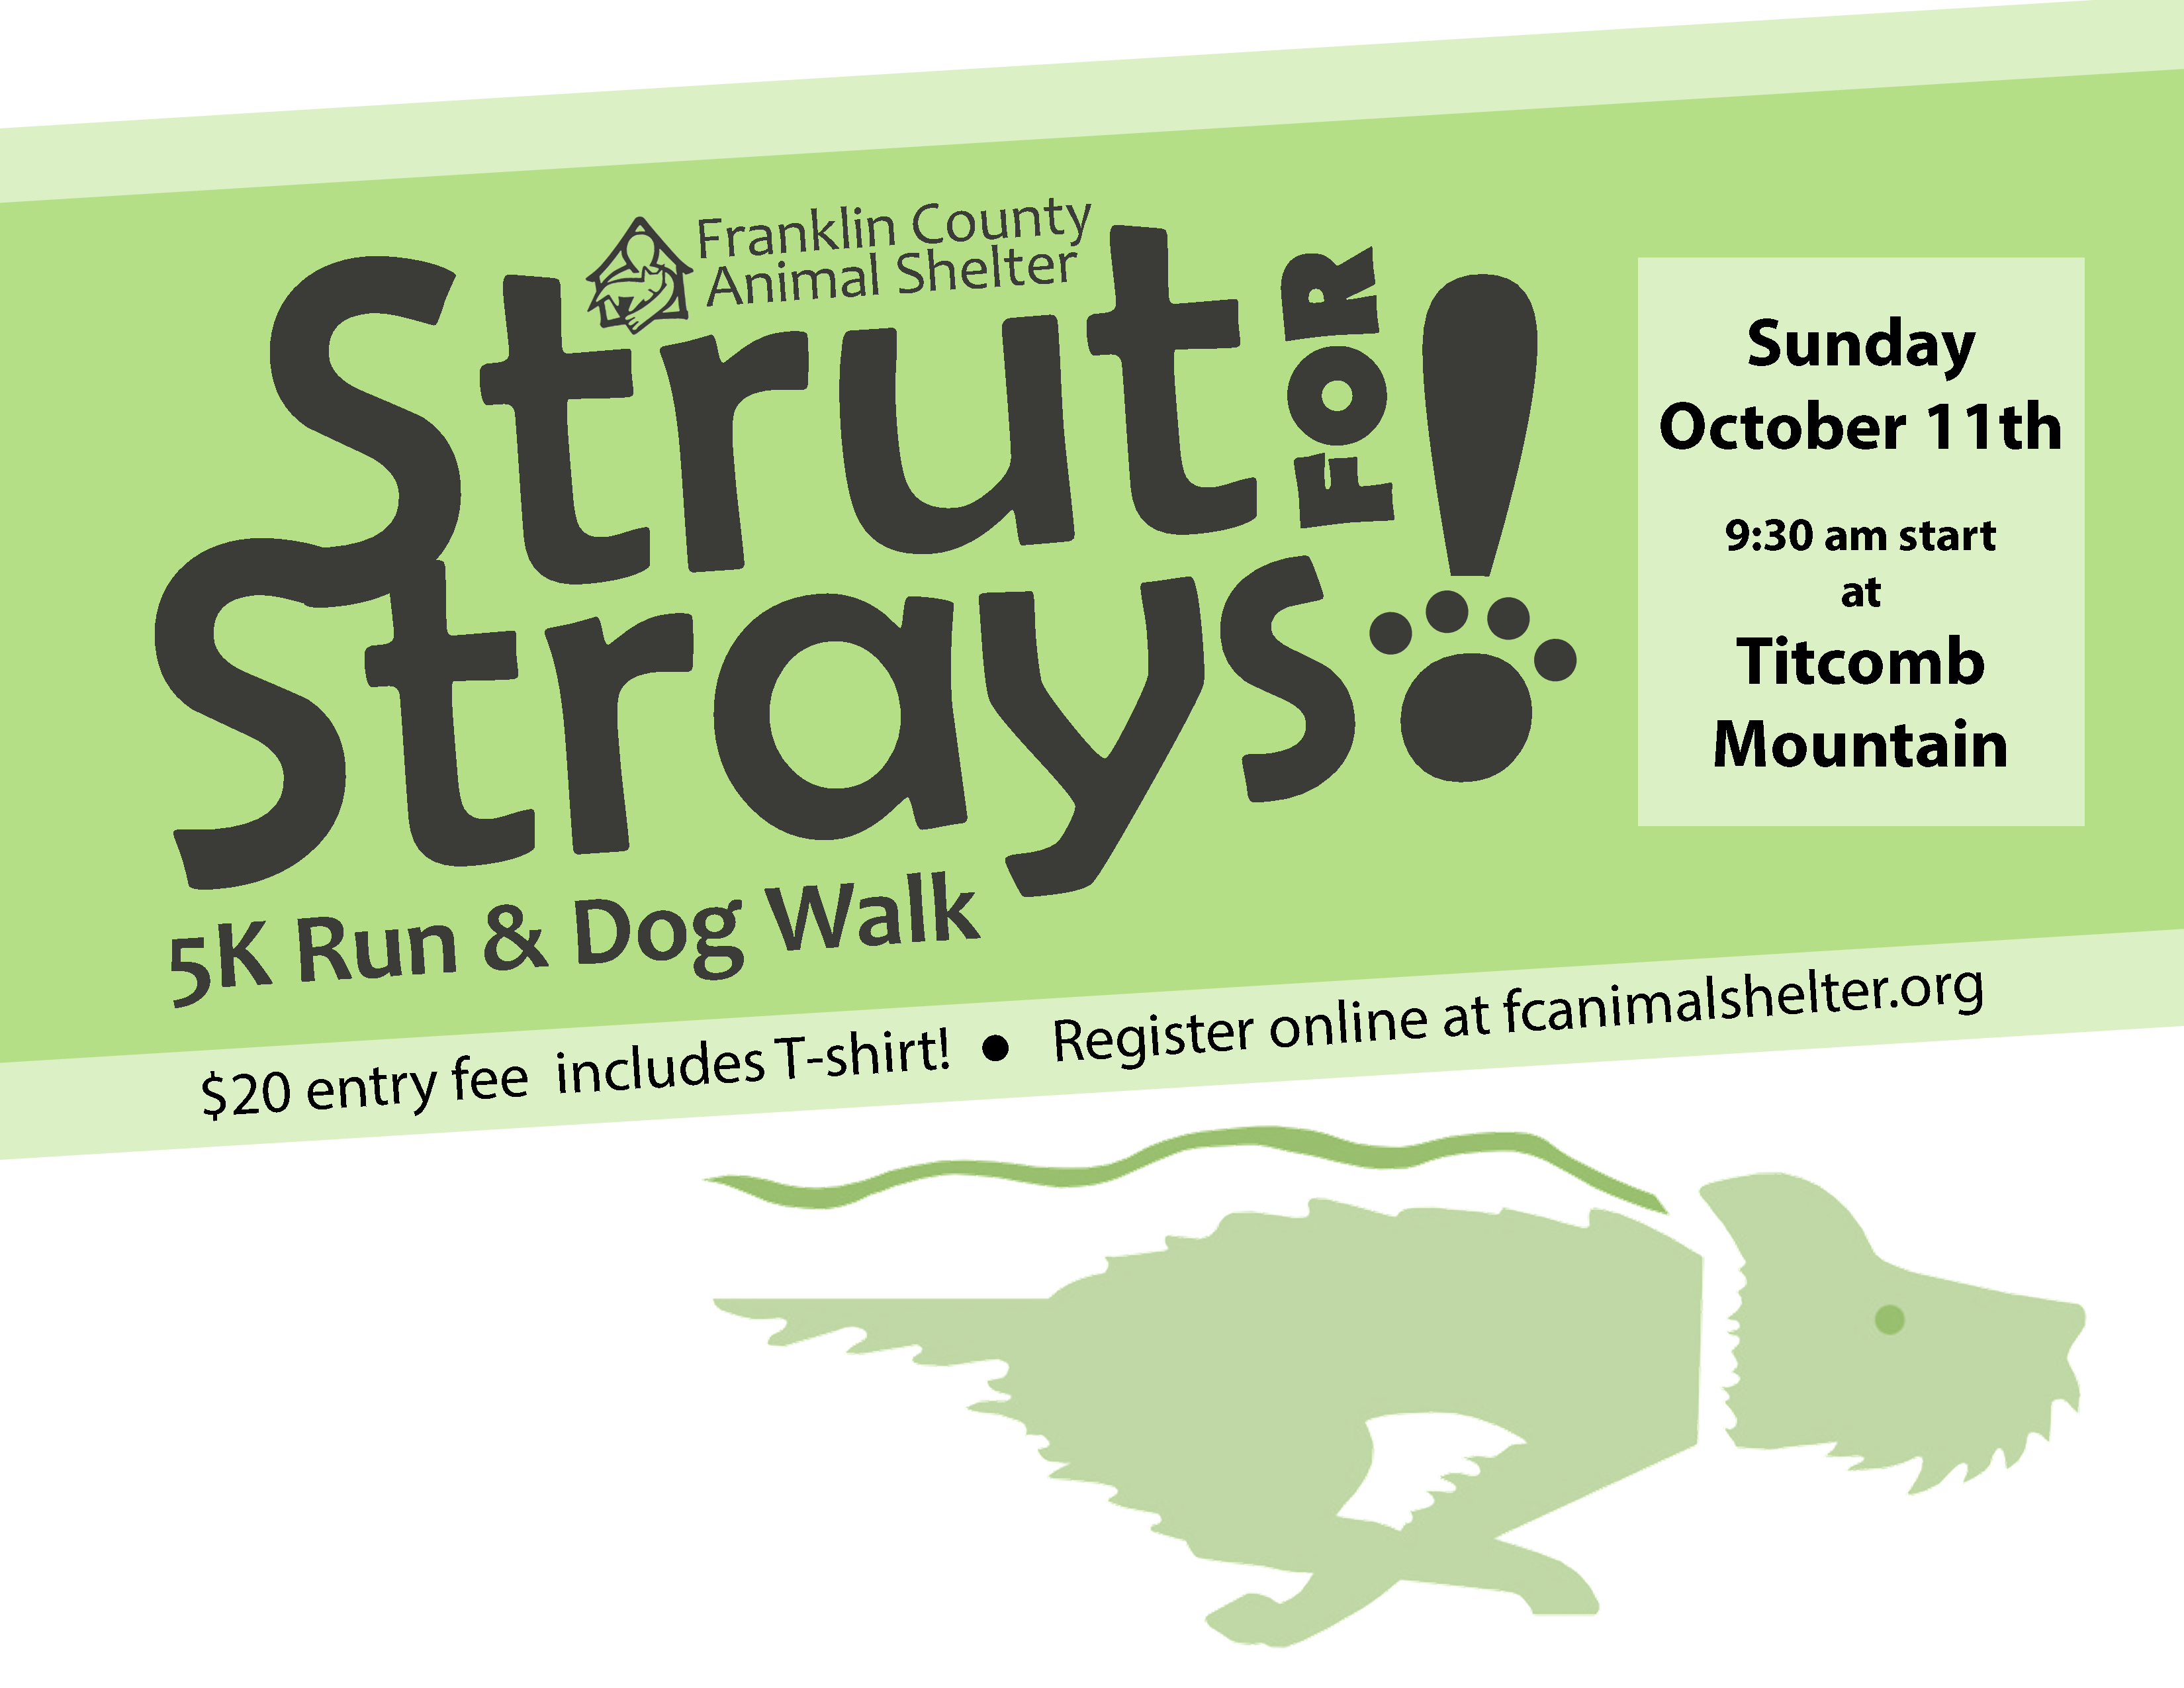 images.raceentry.com/infopages/strut-for-strays-5k-run-and-dog-walk-infopages-1864.png